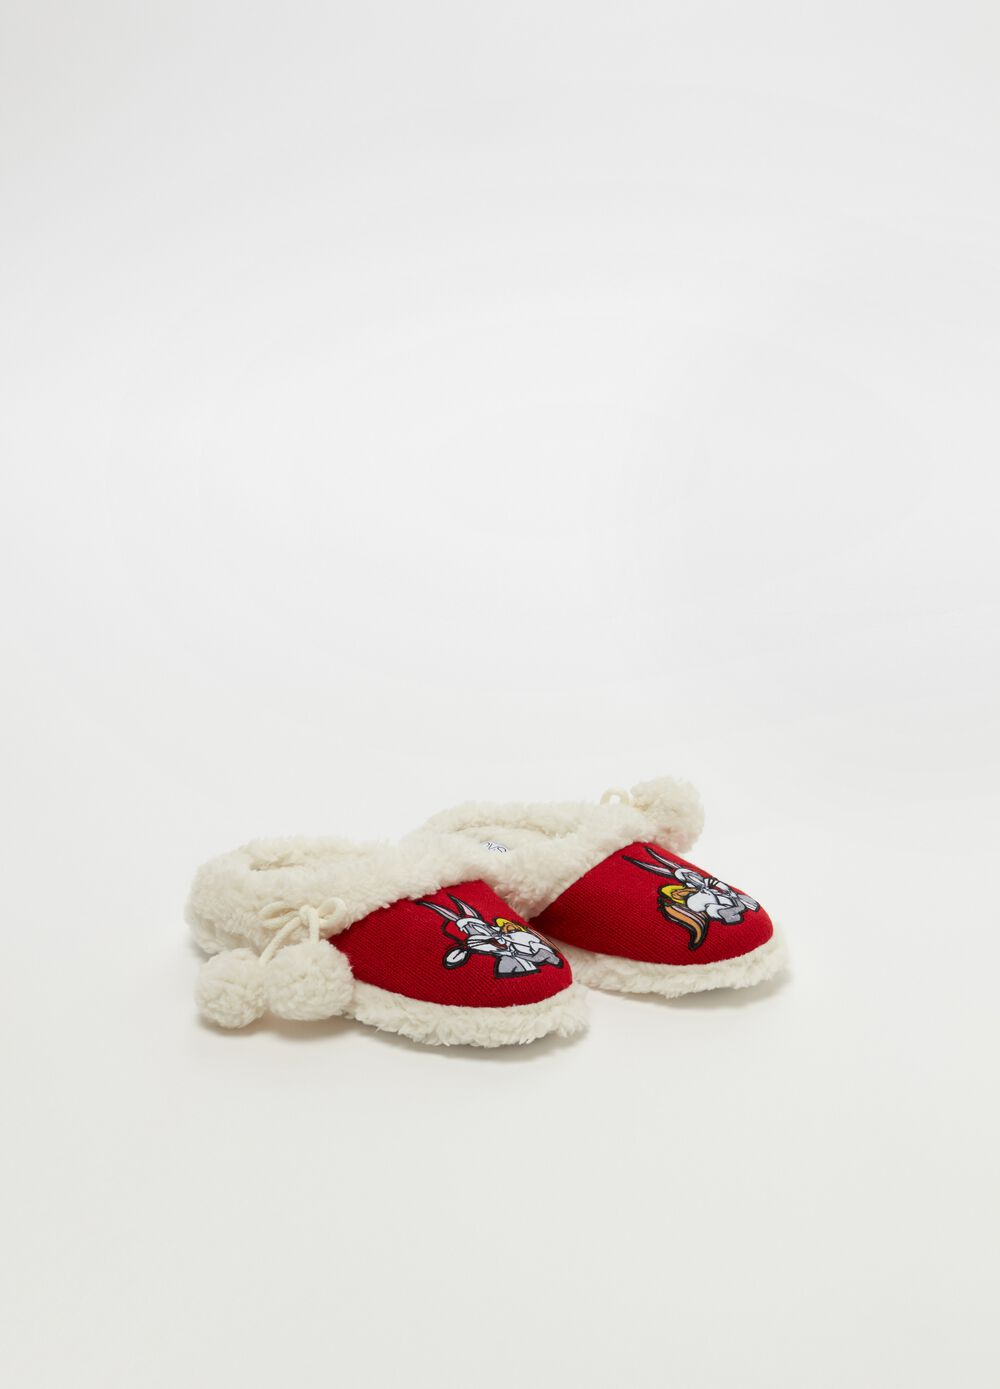 Warner Bros slippers with faux fur